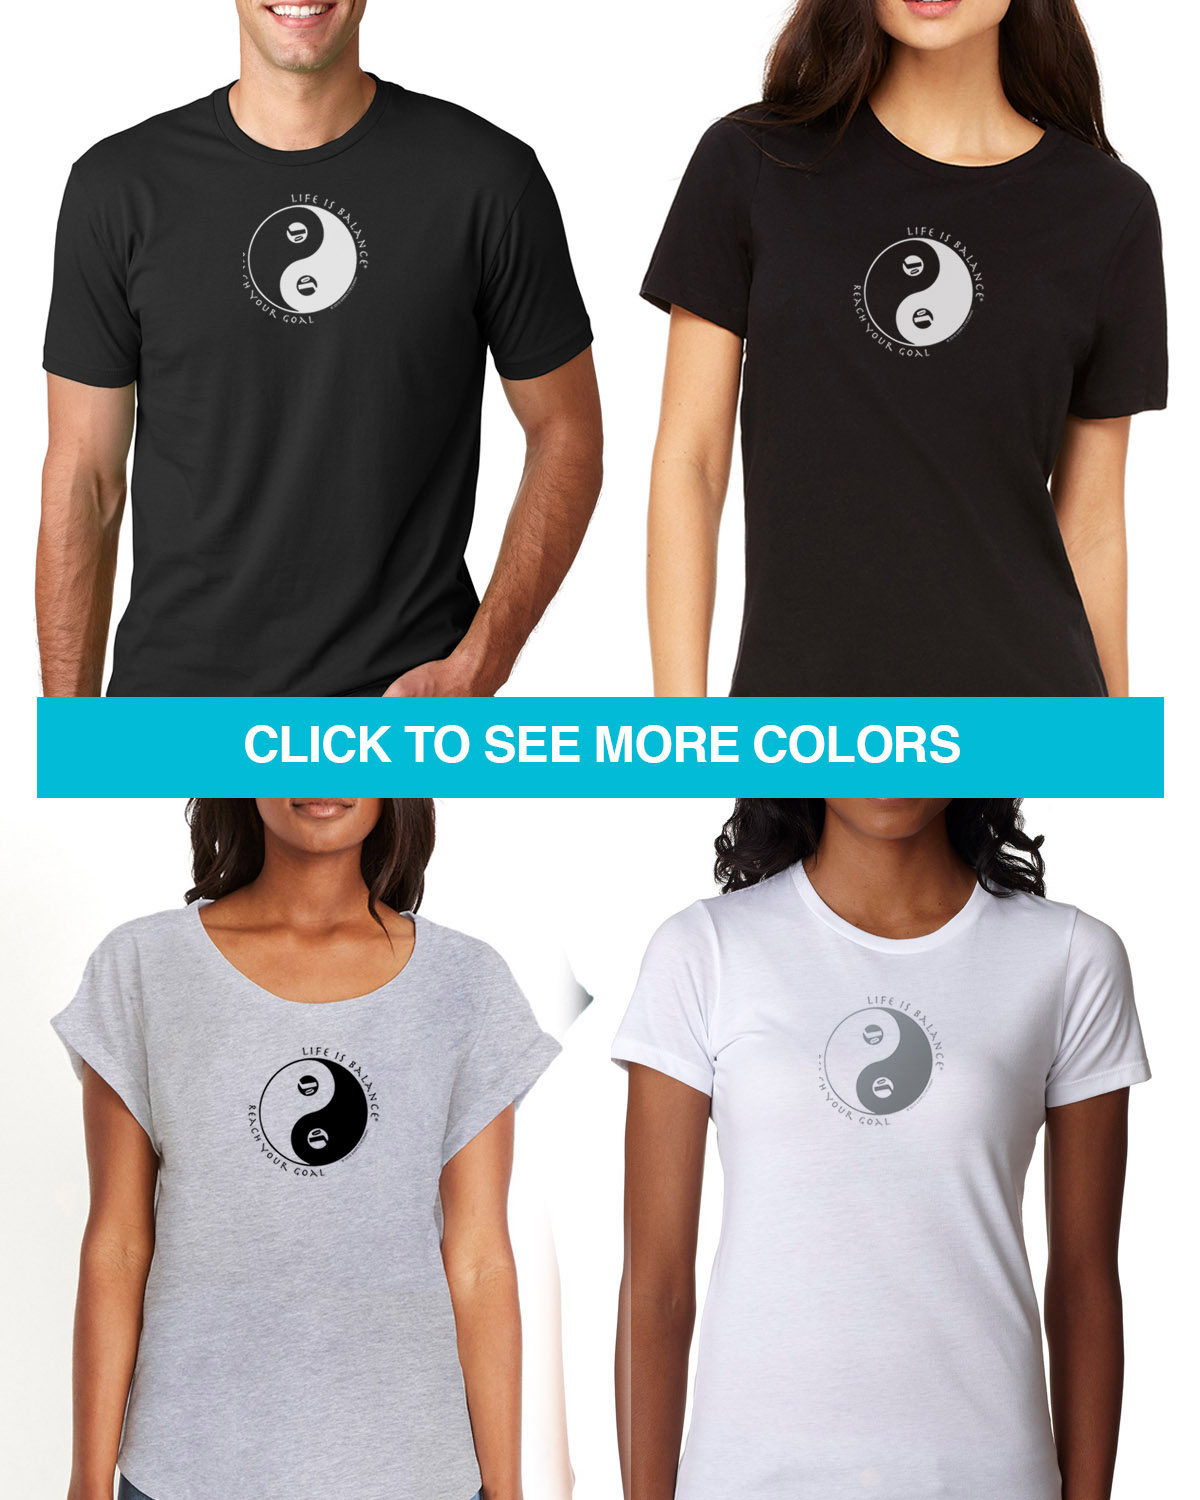 Short sleeve hockey t-shirts for Men and Women.